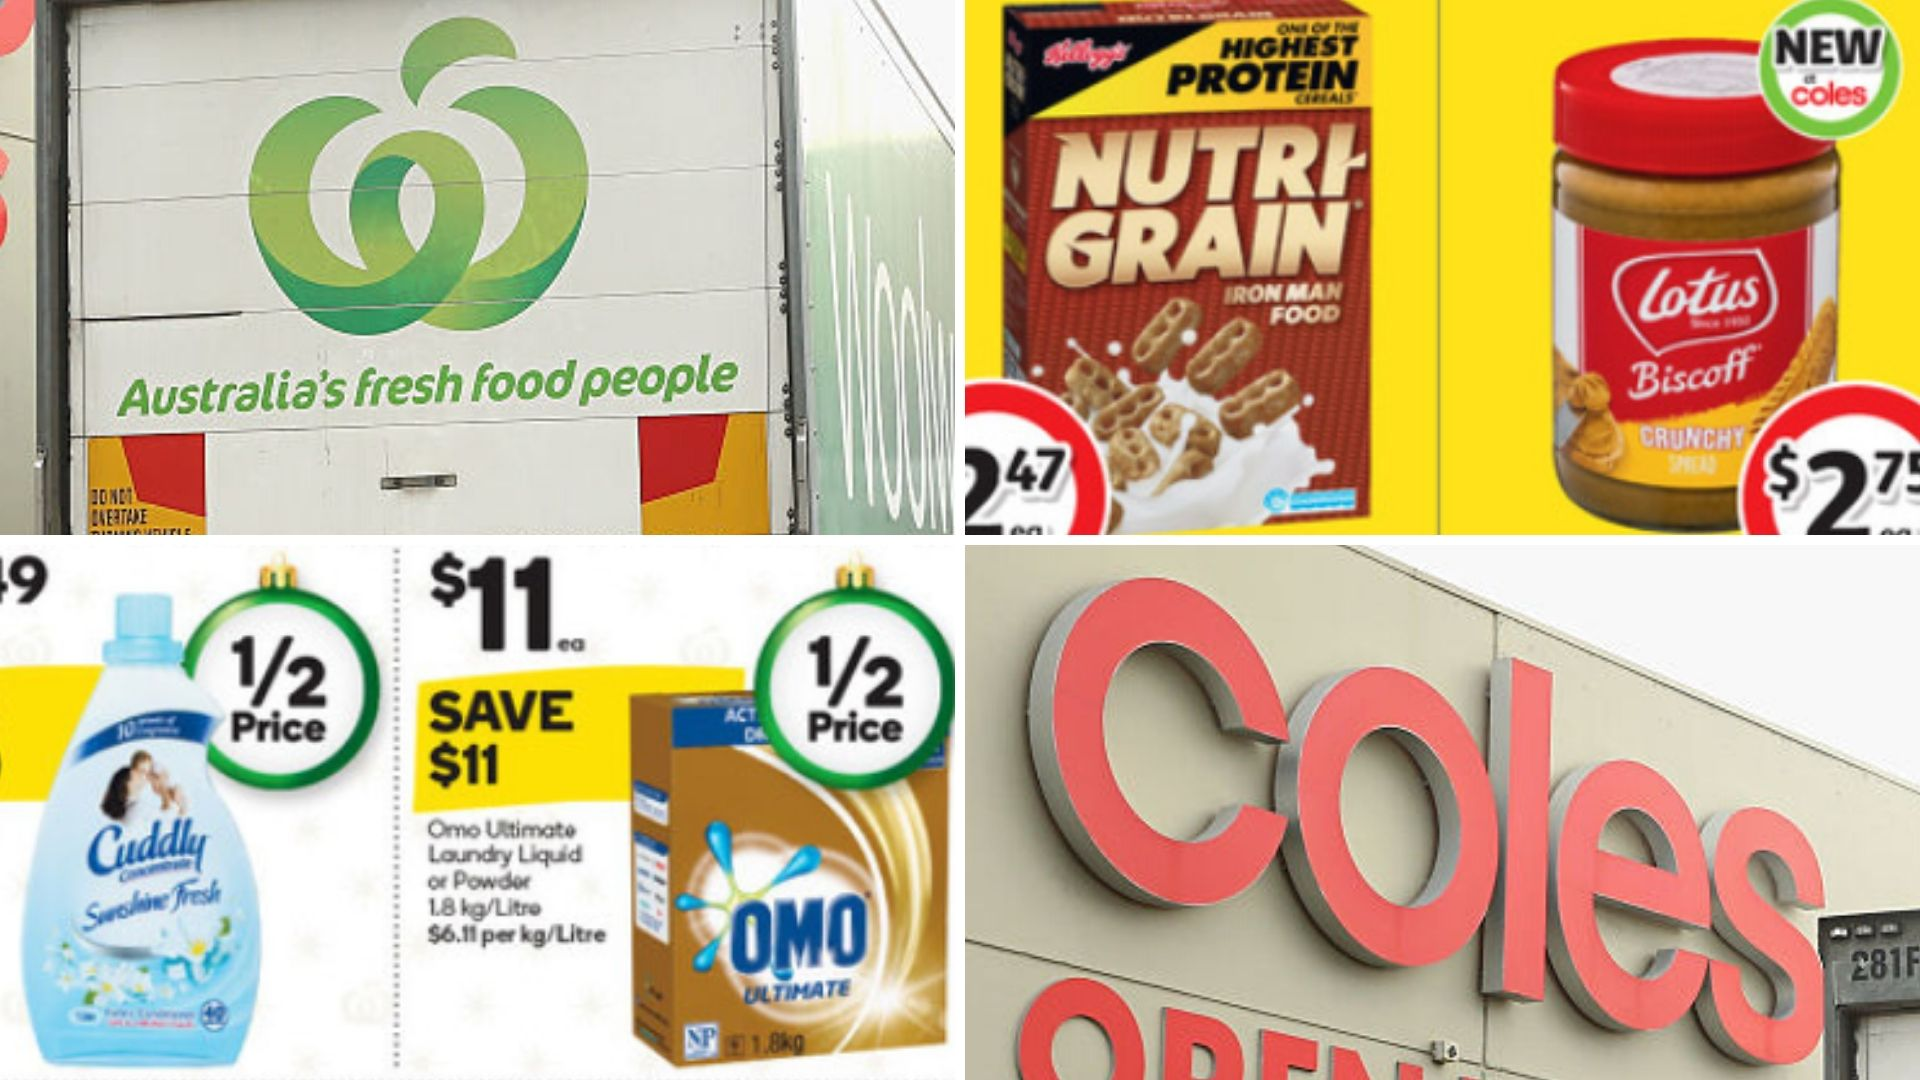 Coles And Woolworths Specials Half Price Deals For This Week